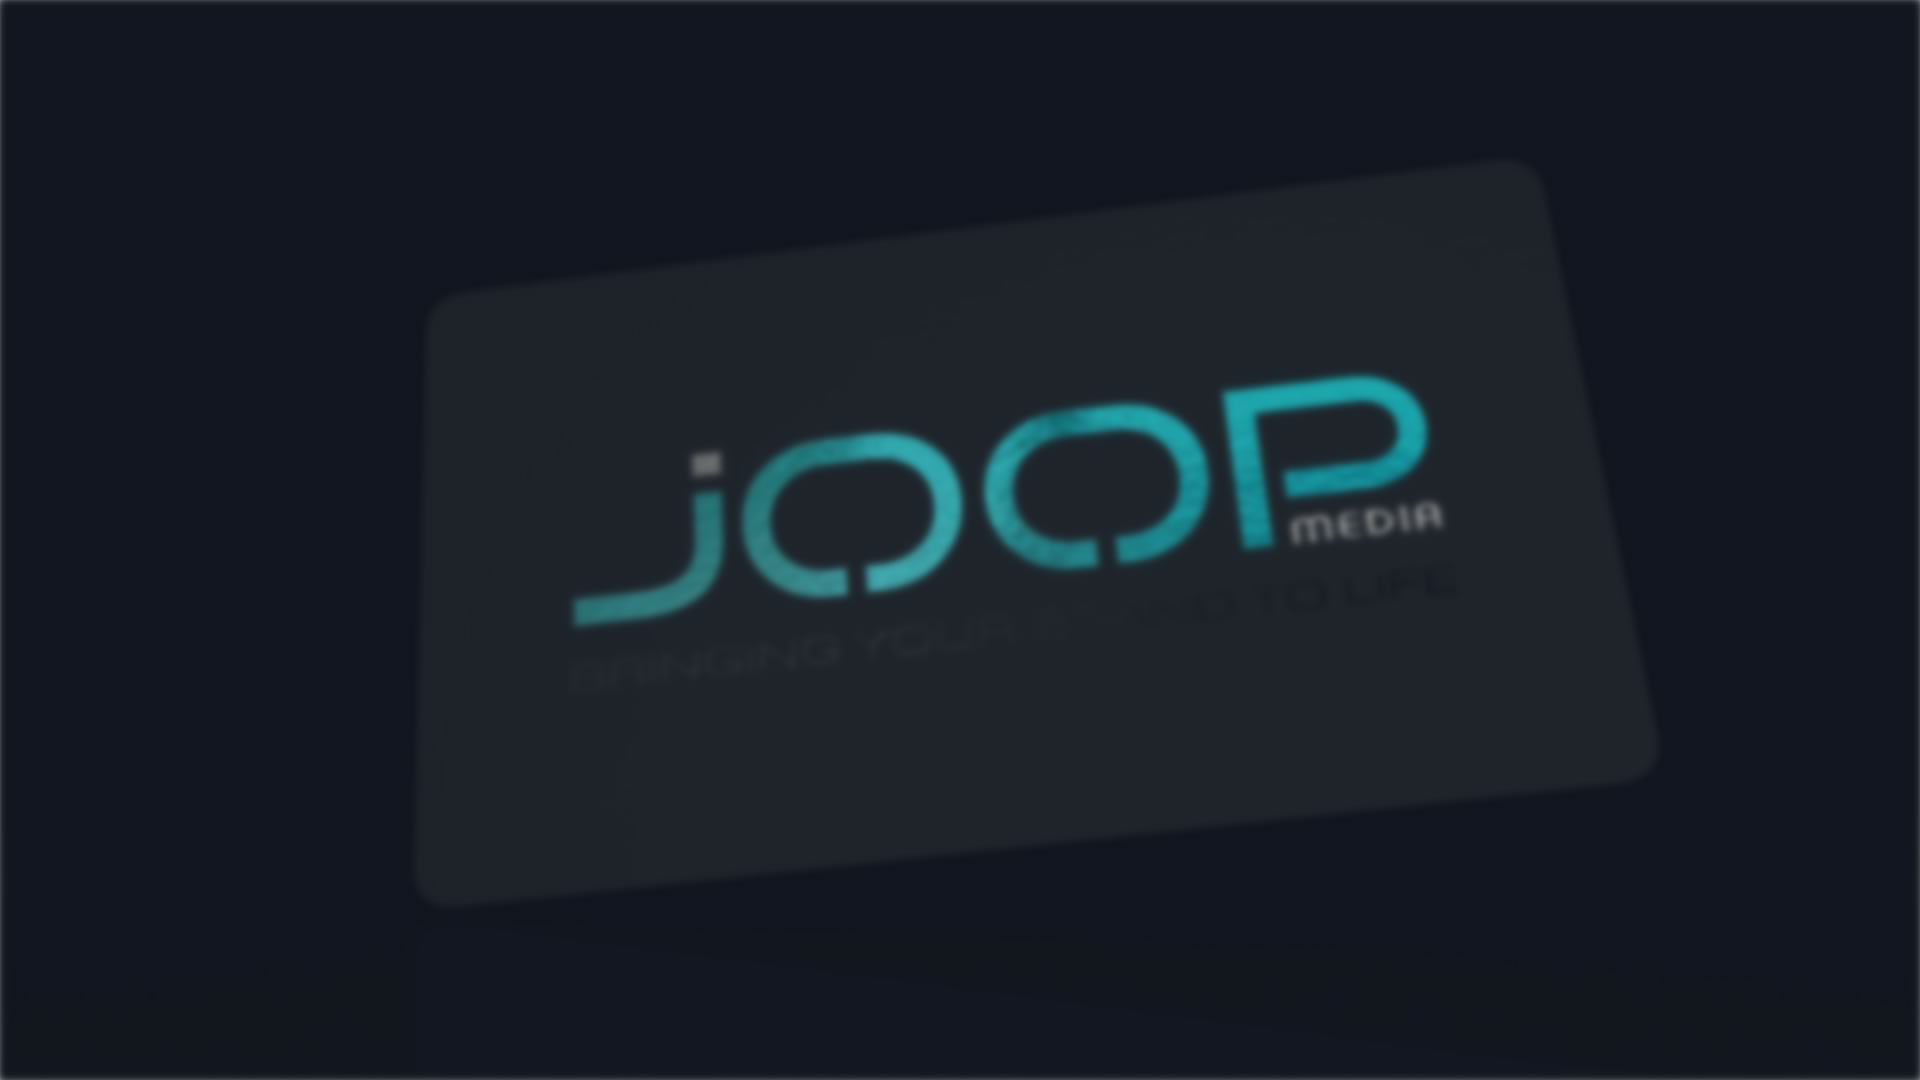 Joop Media Business Card 3D Visualisation